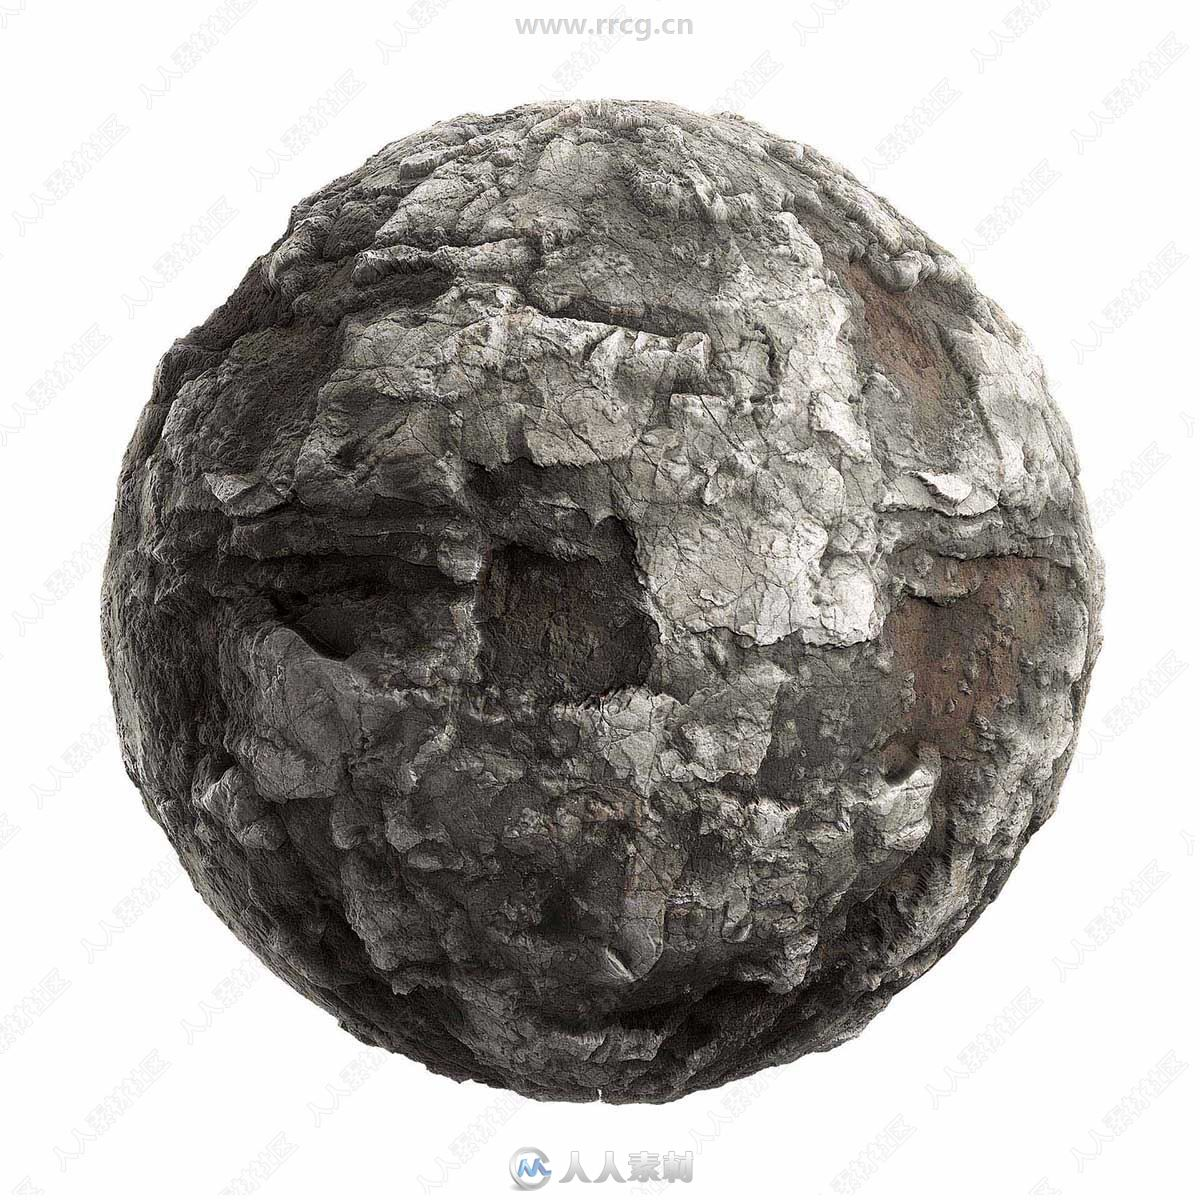 damaged_grey_rock_19_91_render.jpg